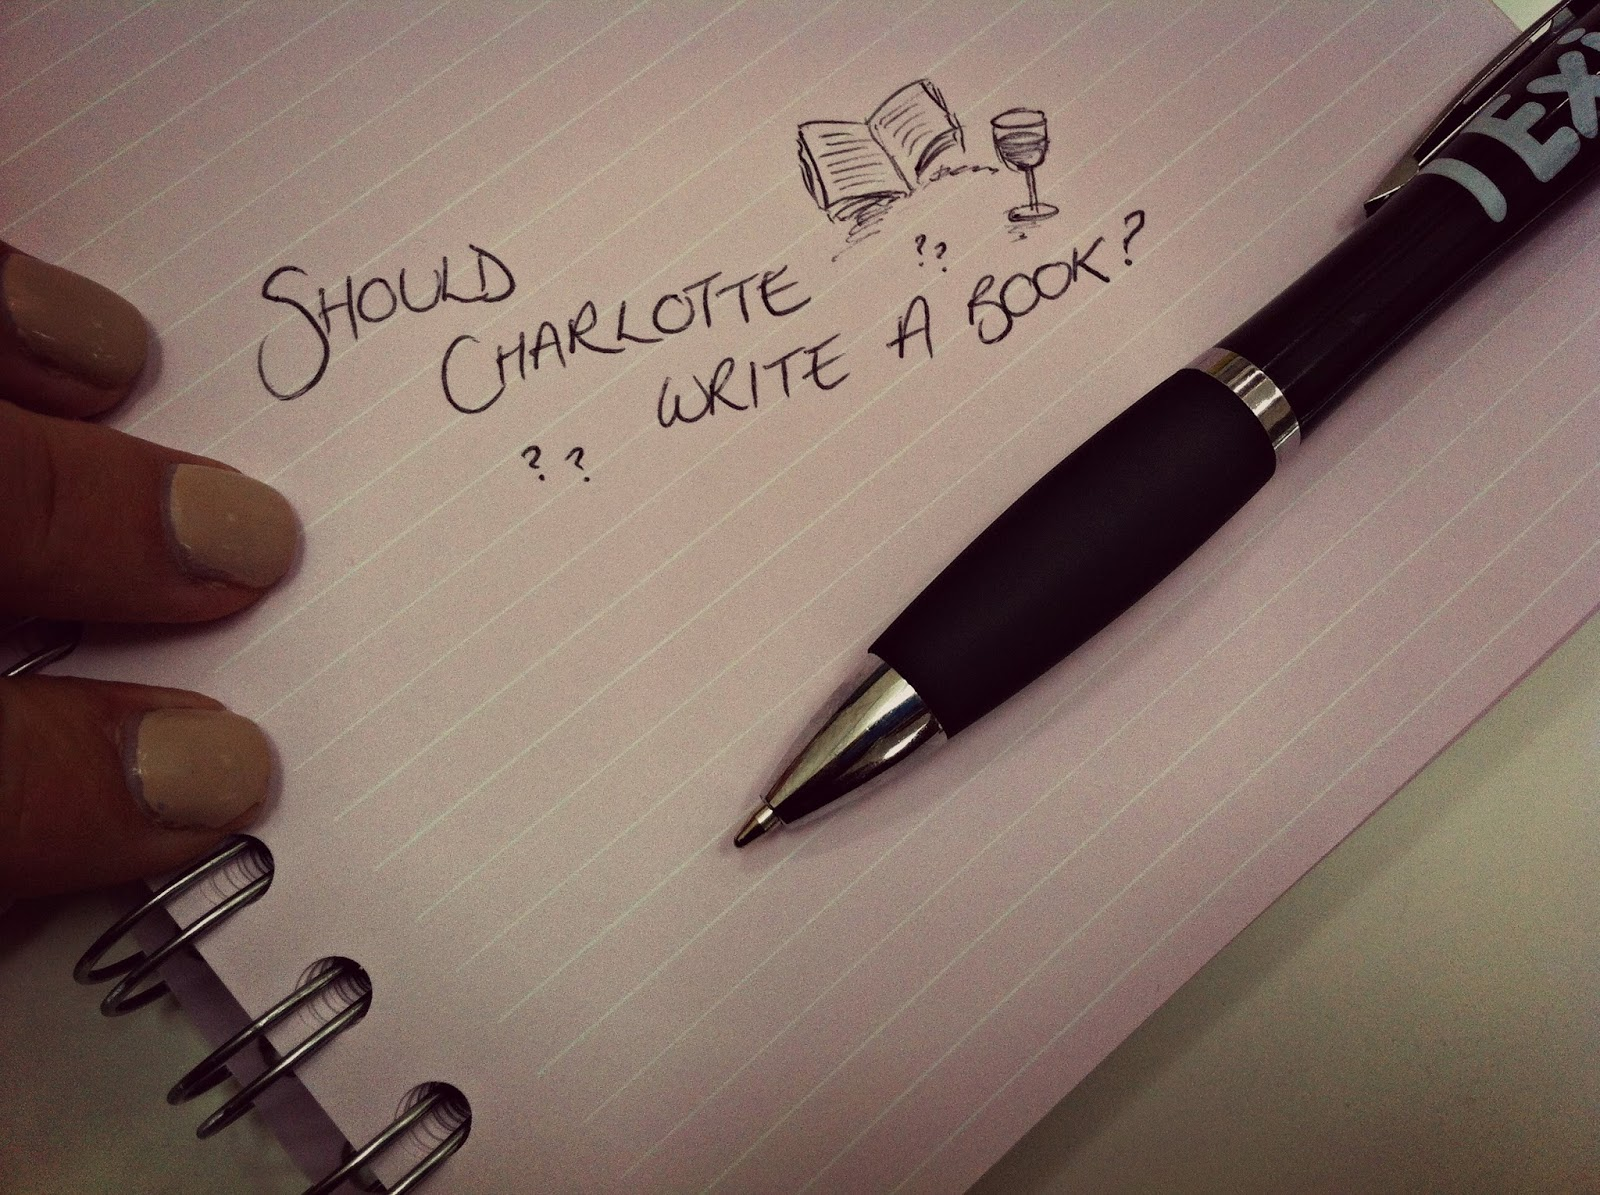 What should i write about?